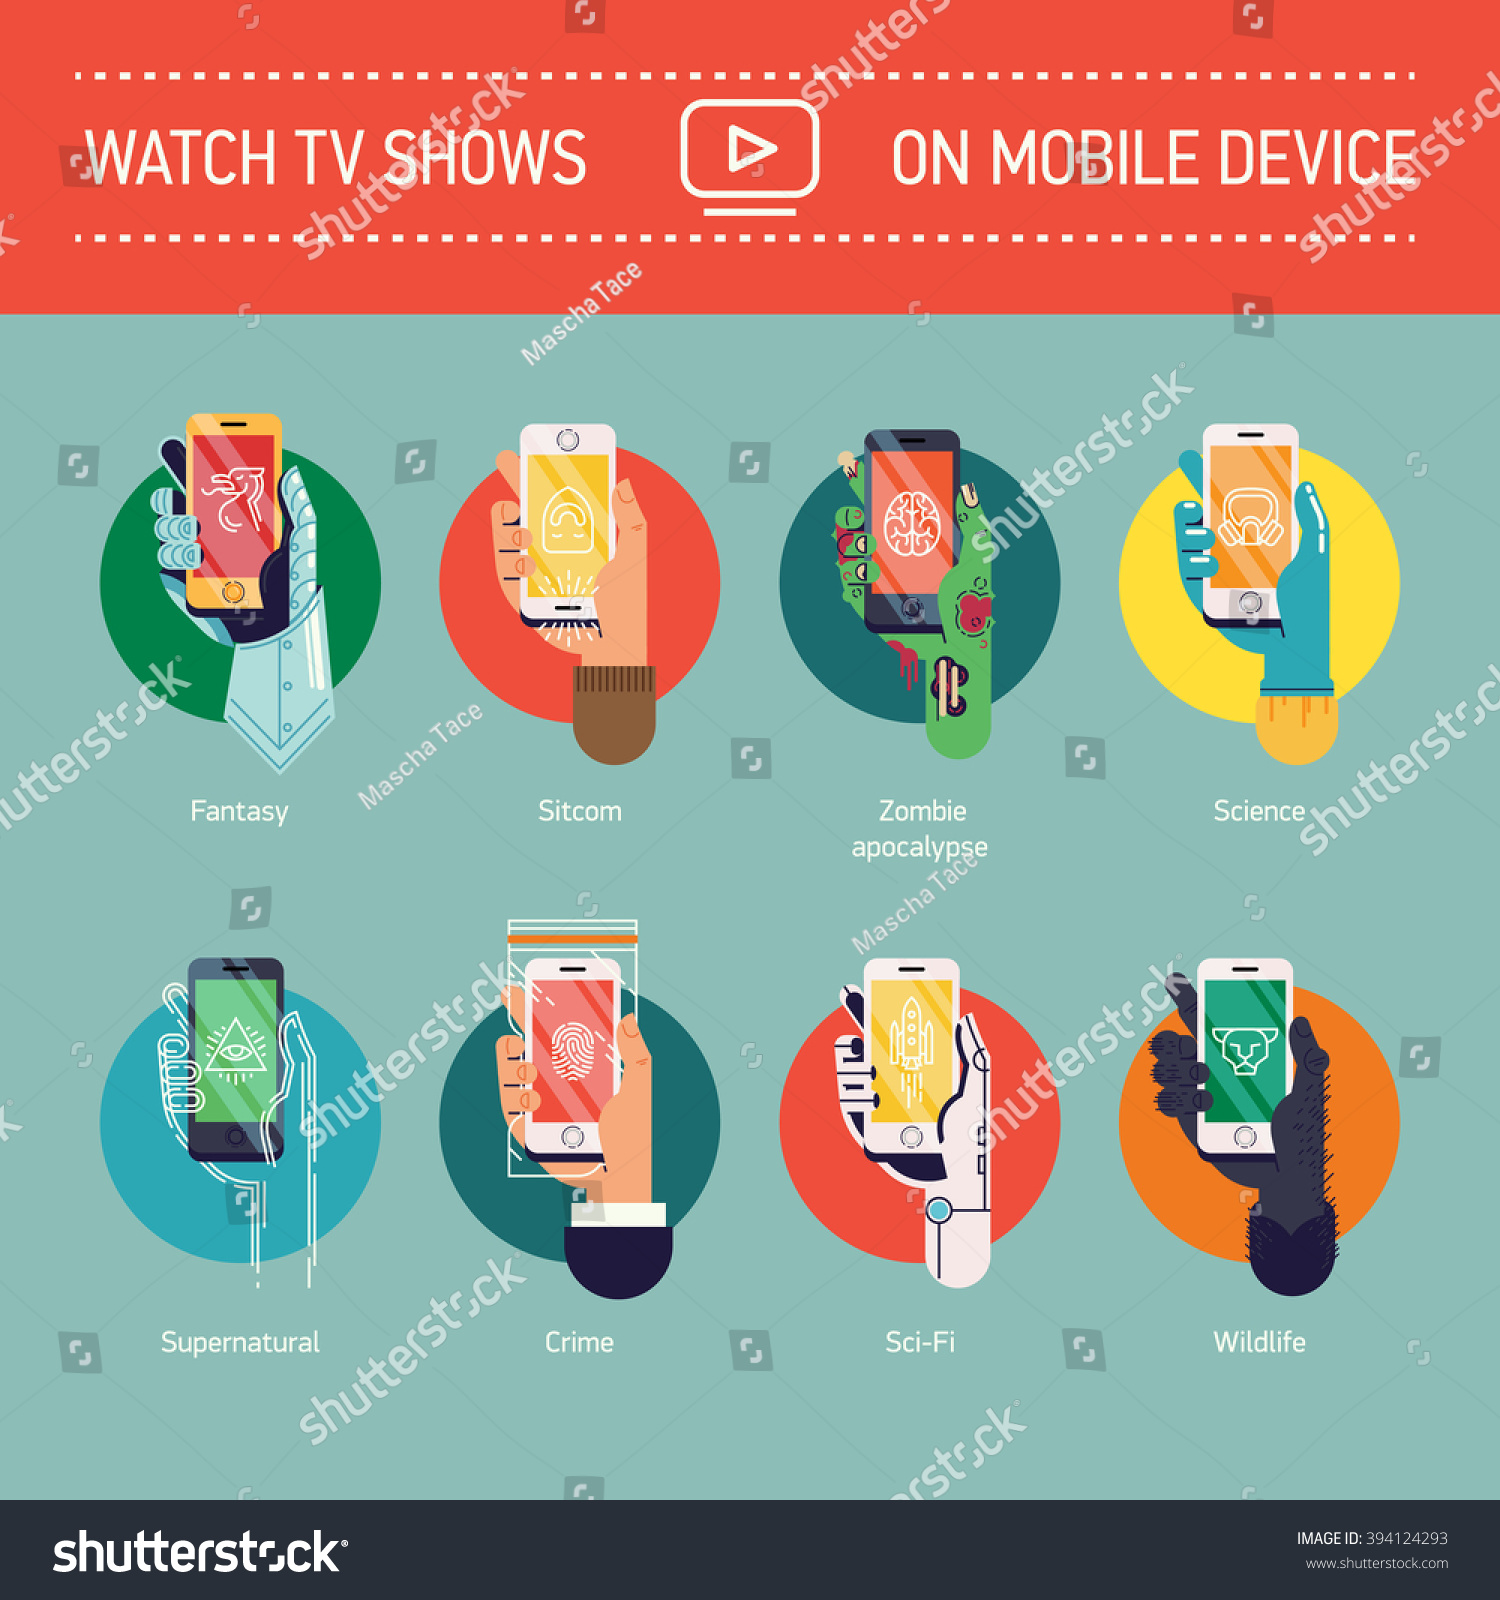 watch tv shows on mobile device stock vector 394124293 - shutterstock